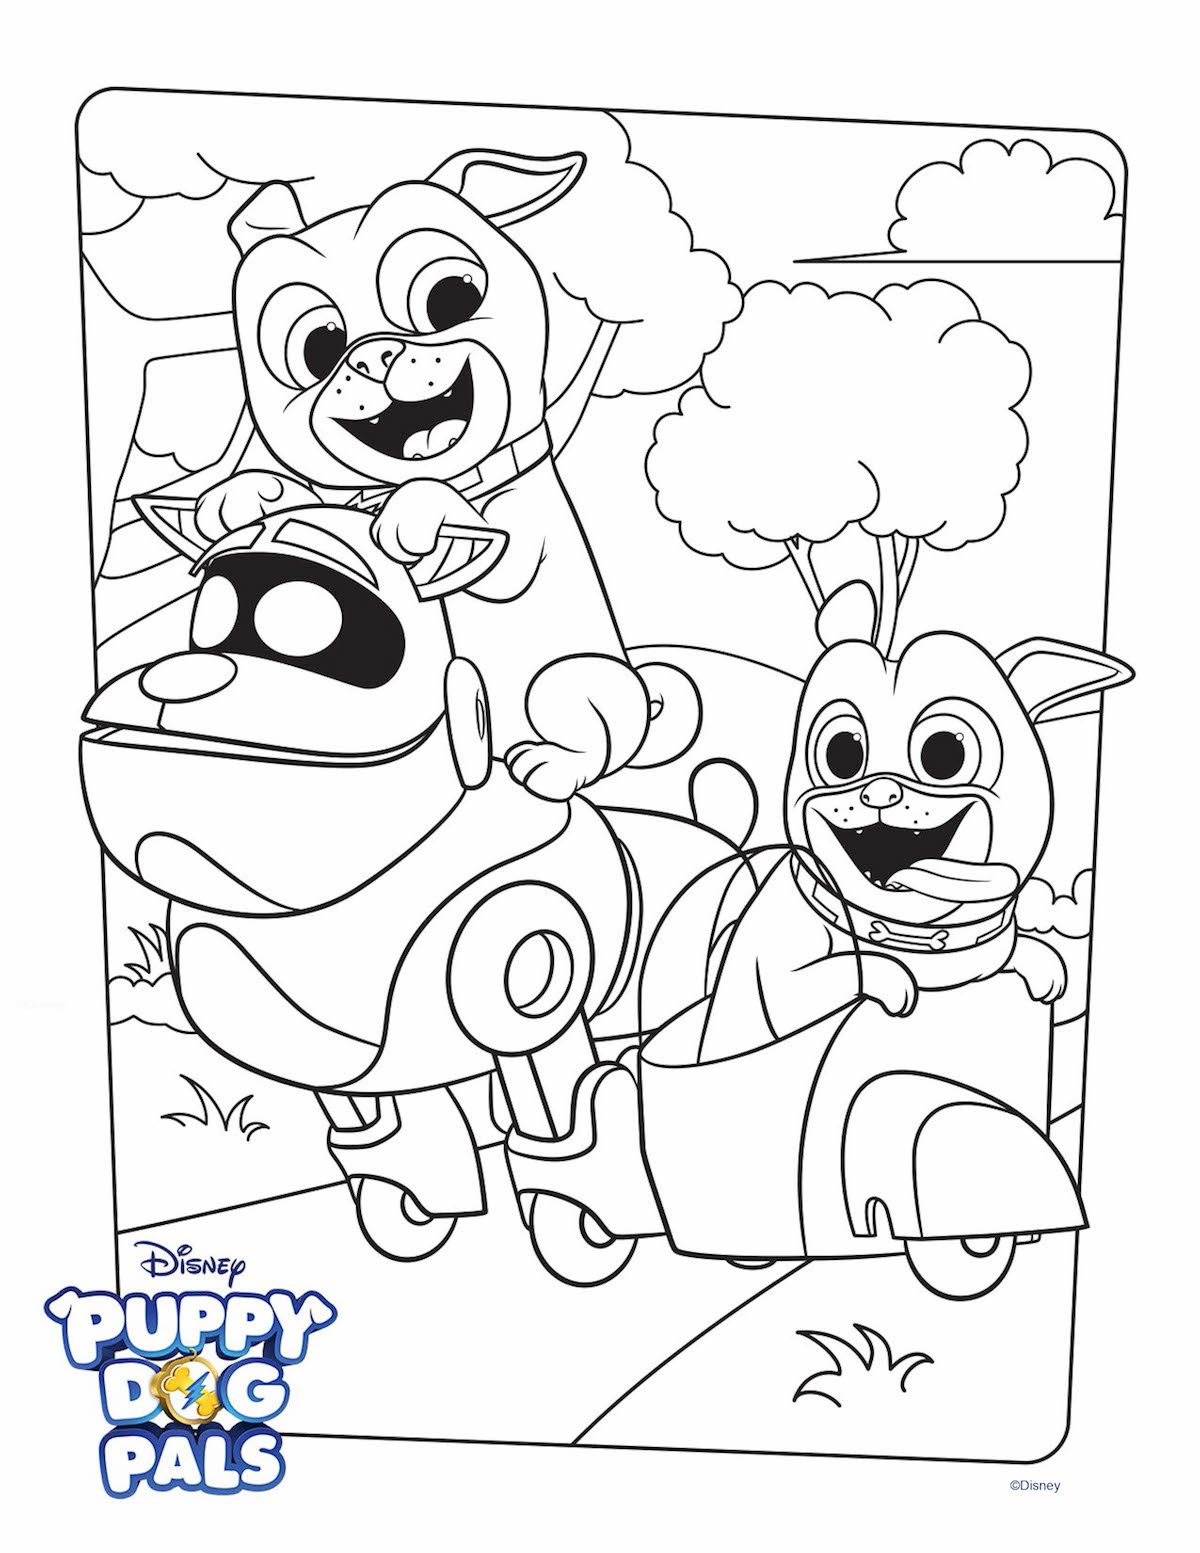 Puppy Dog Pals Coloring Page Activity